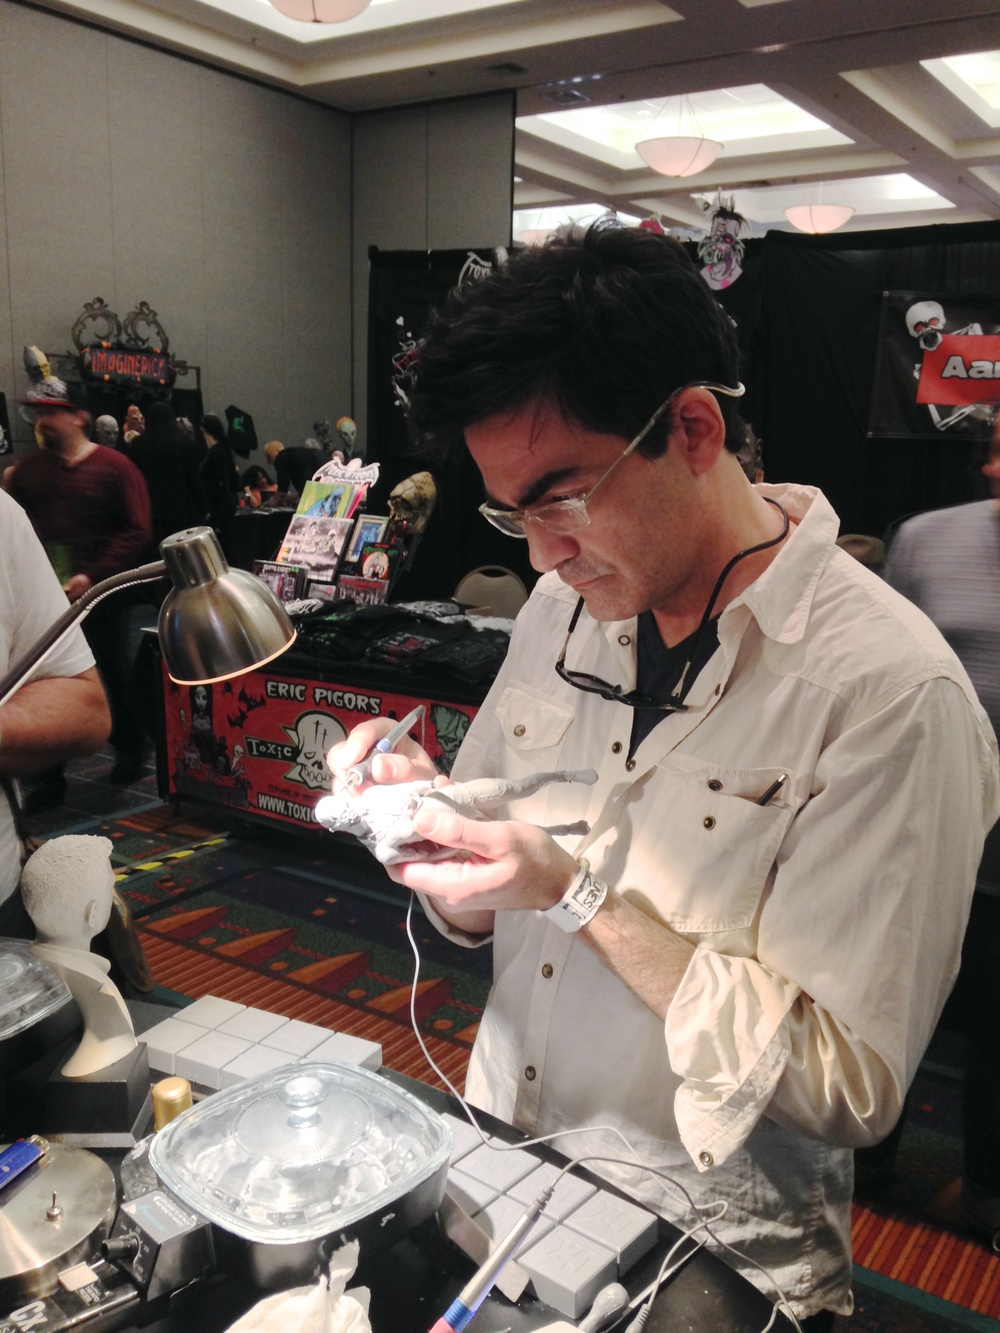 Rod Maxwell from FaceOff Season 3 - possibly one of the nicest people ever - sculpts details on a zombie.